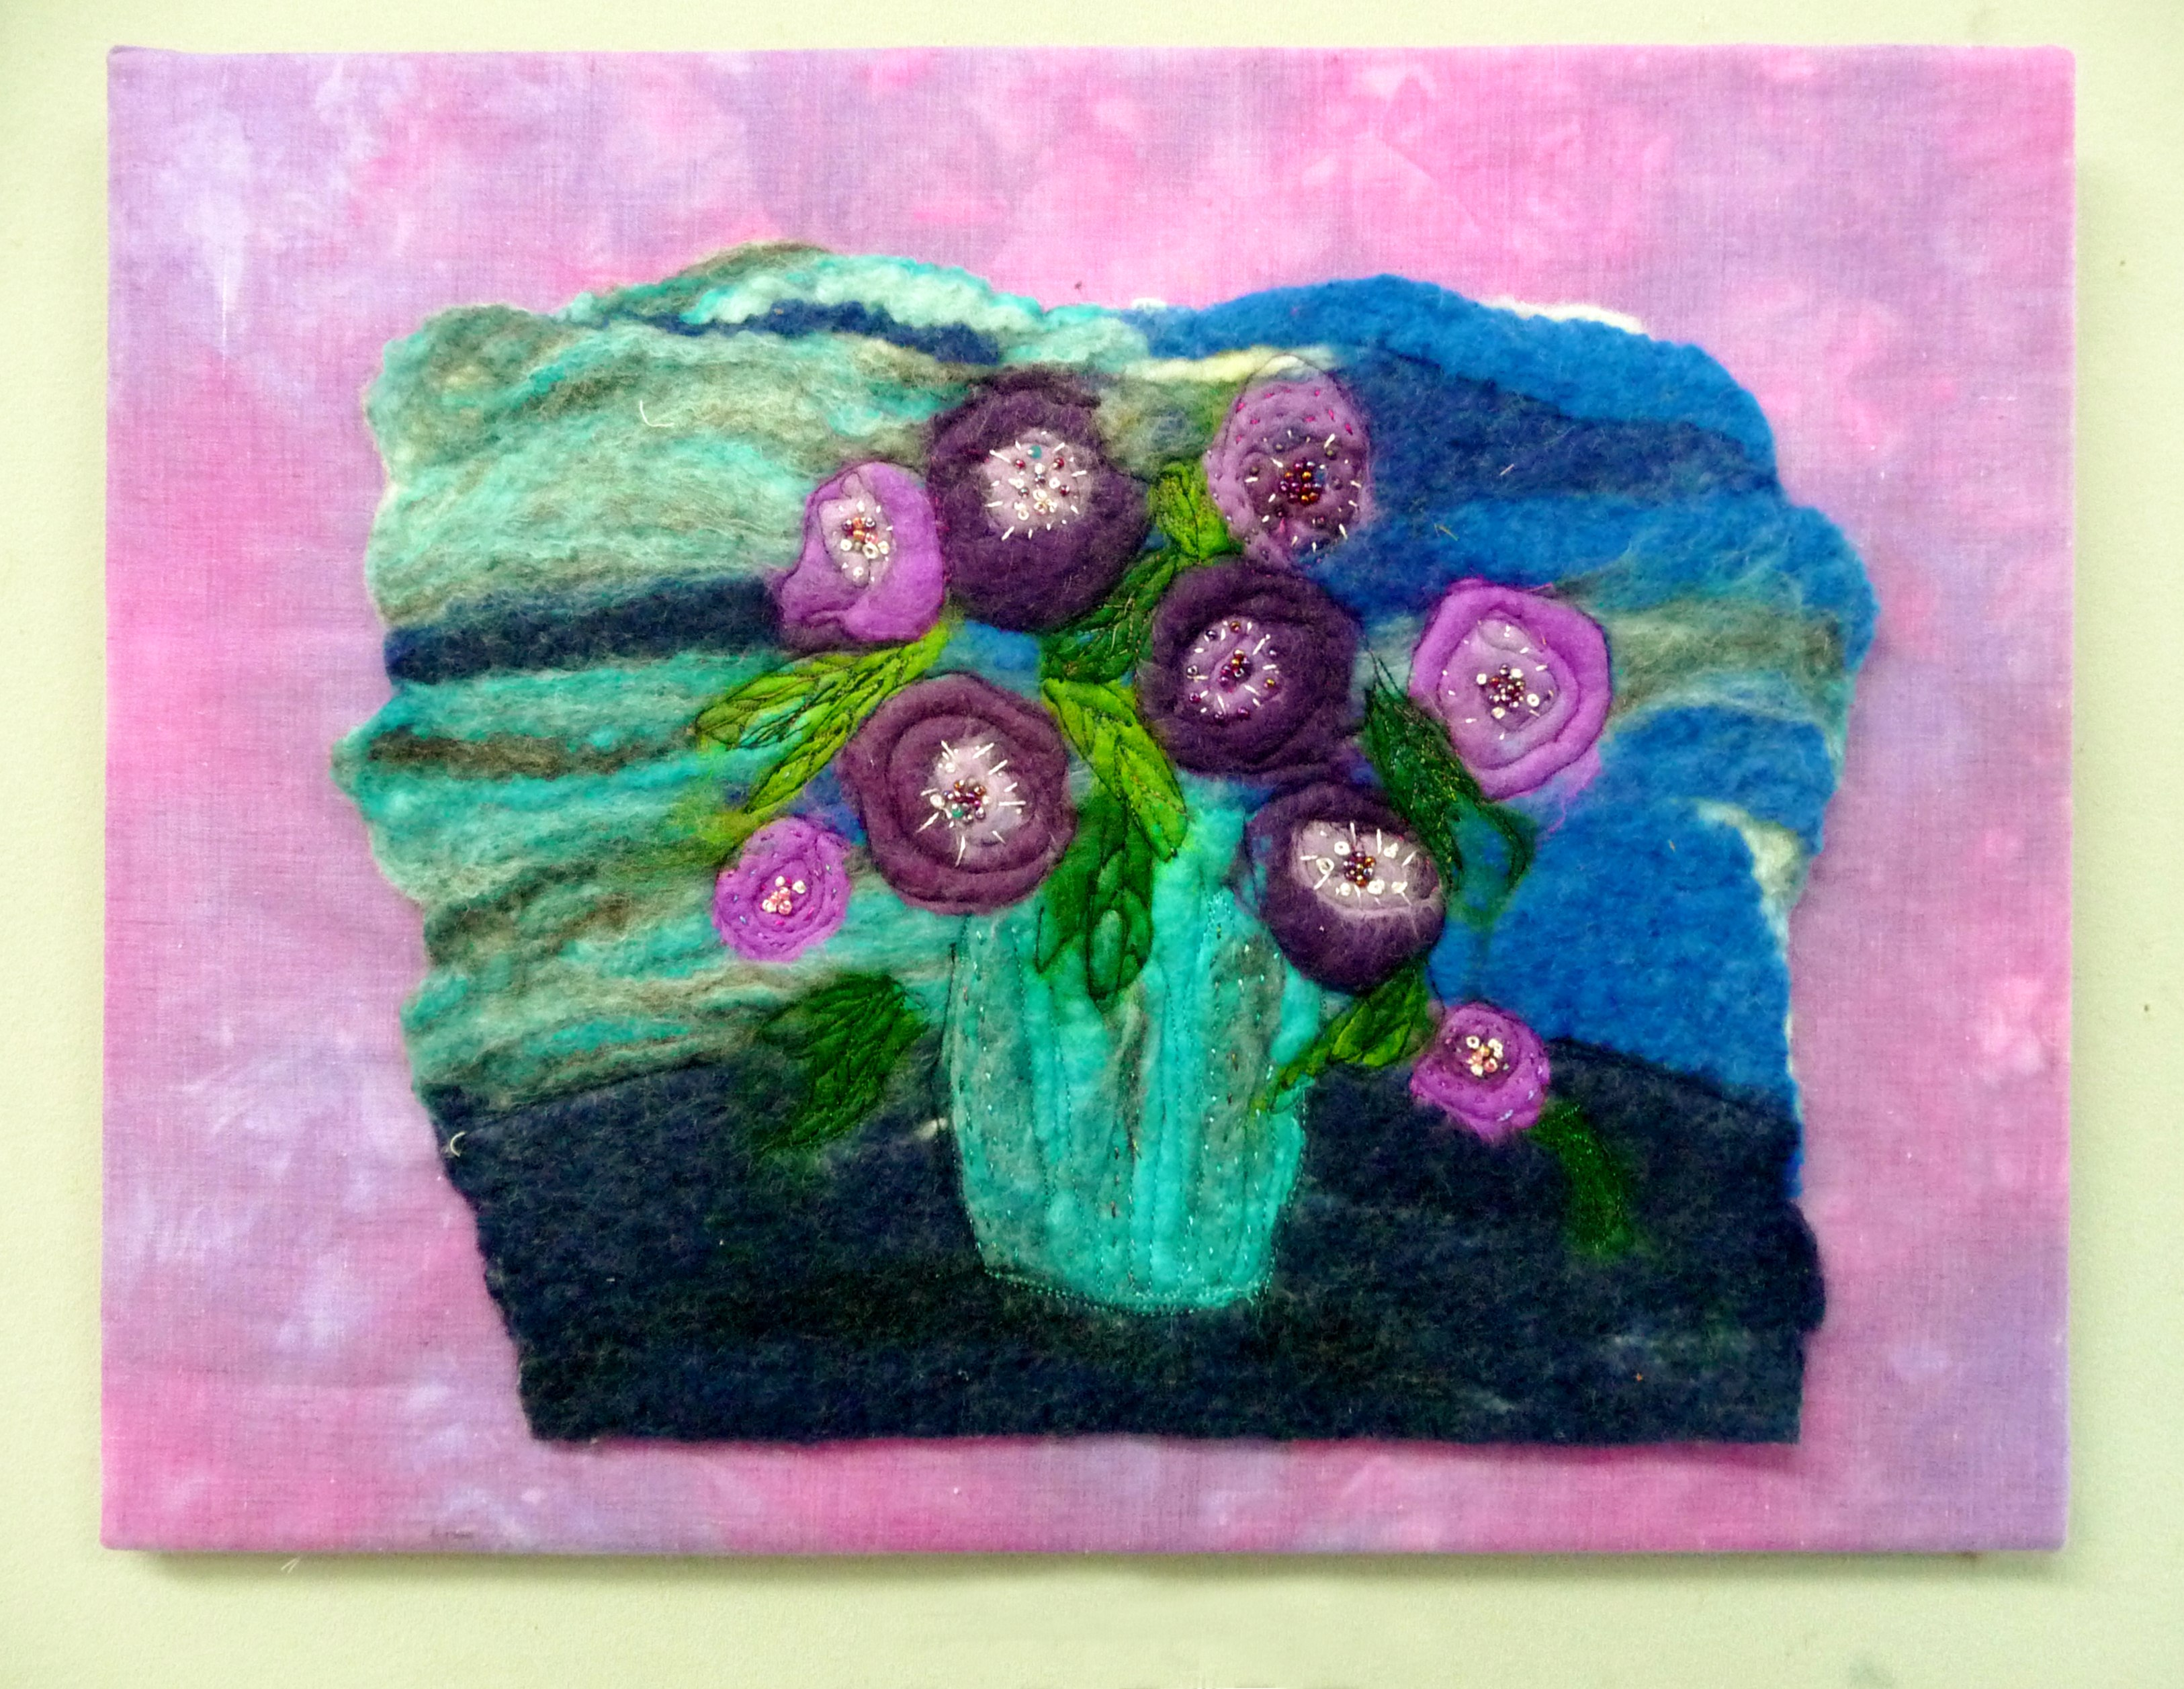 embroidery by Judith Fabby